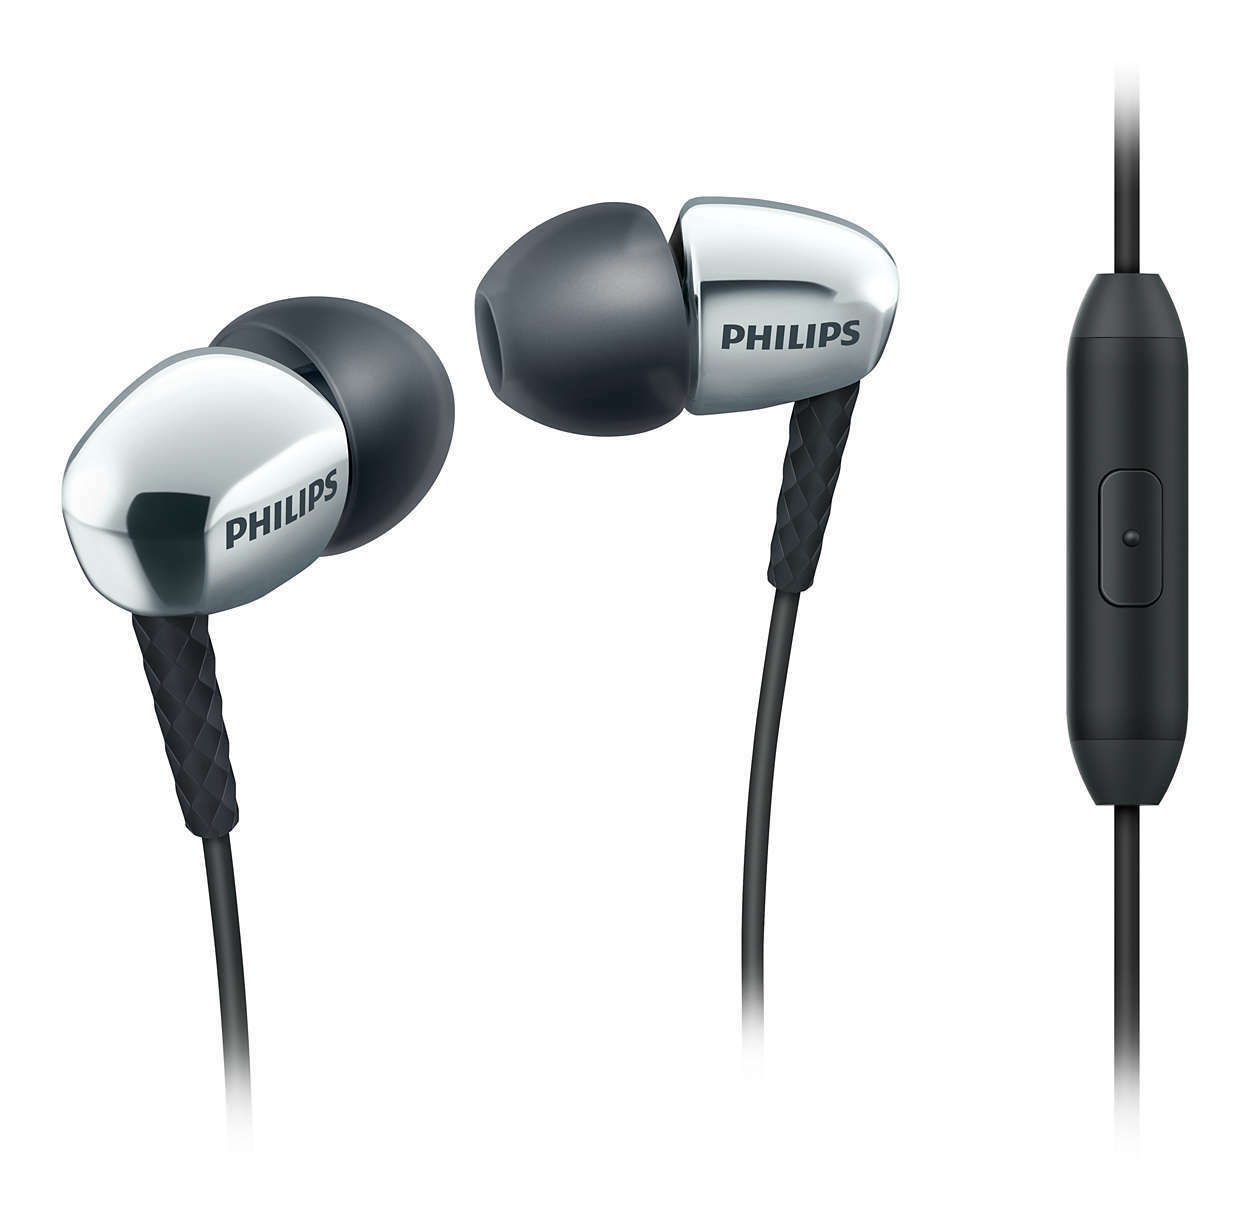 Philips Ear Headphones